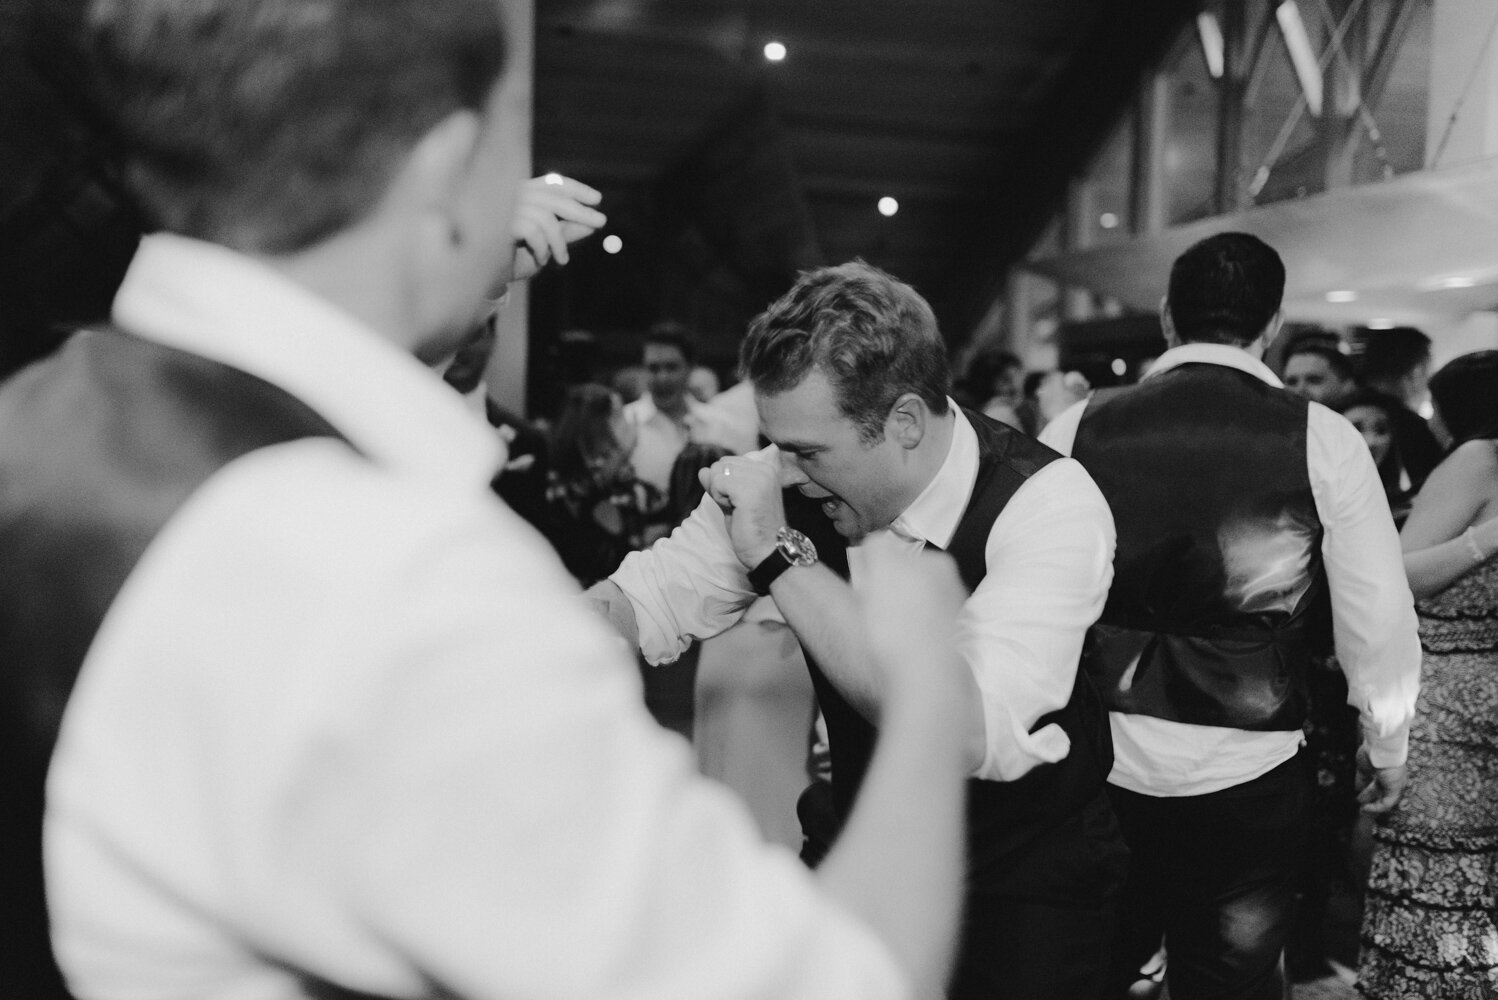 Edgewood wedding, photo of groom dancing